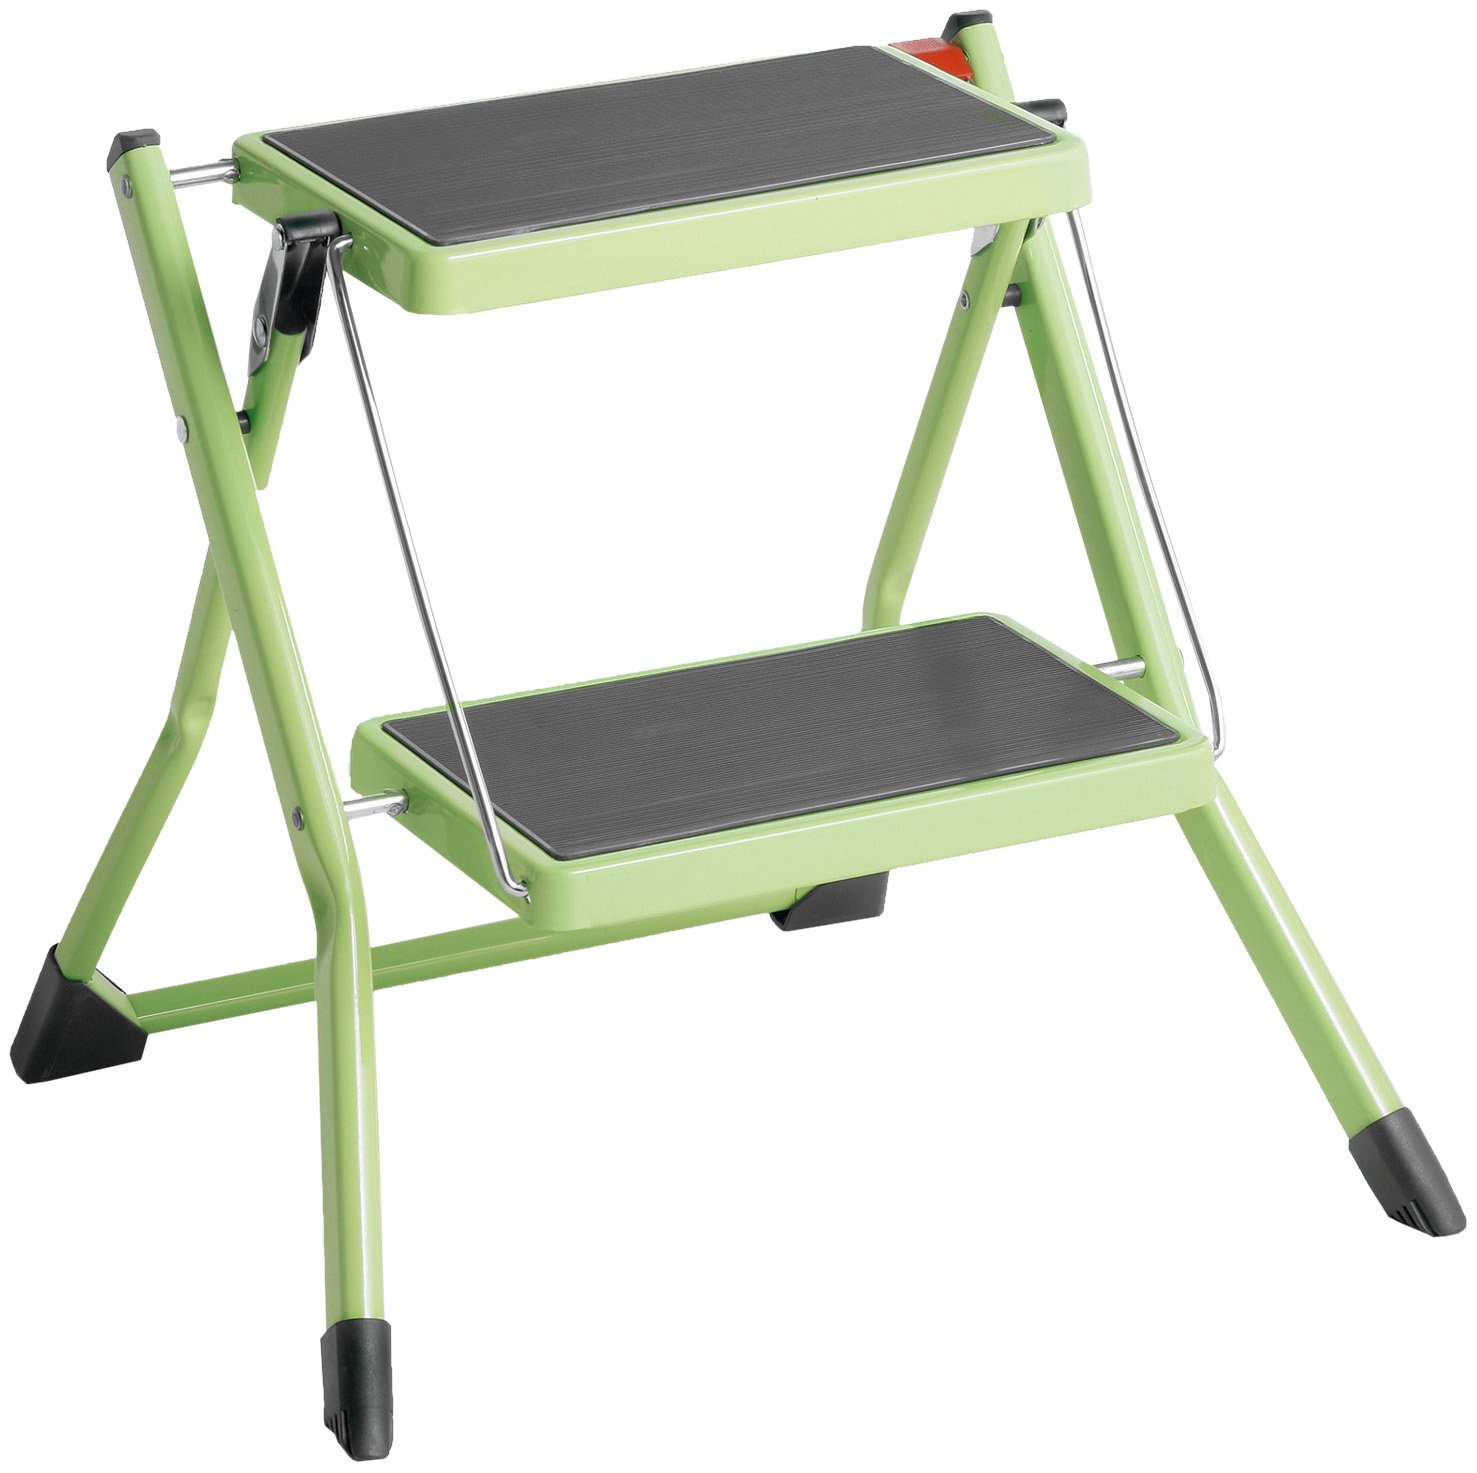 150 kg Capacity Hailo 4310-151 Mini small and compact folding steps 2 large steps with non-slip mats